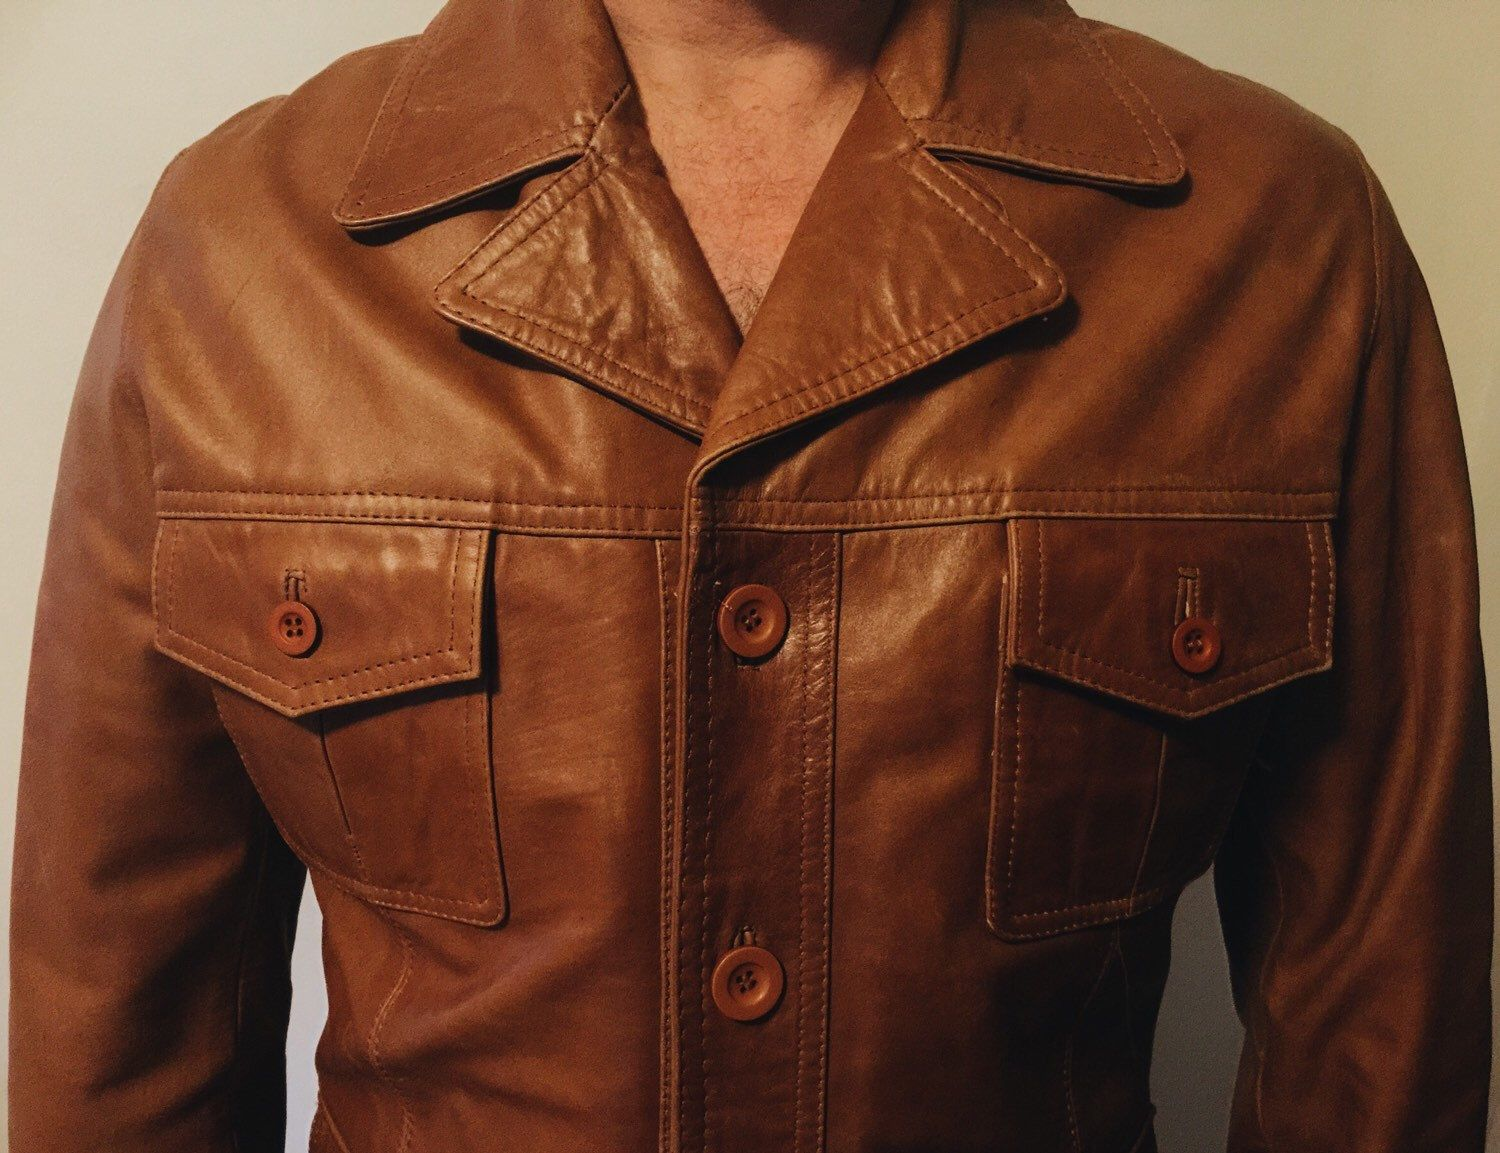 Men's '70sstyle Brown Leather Jacket Brown leather